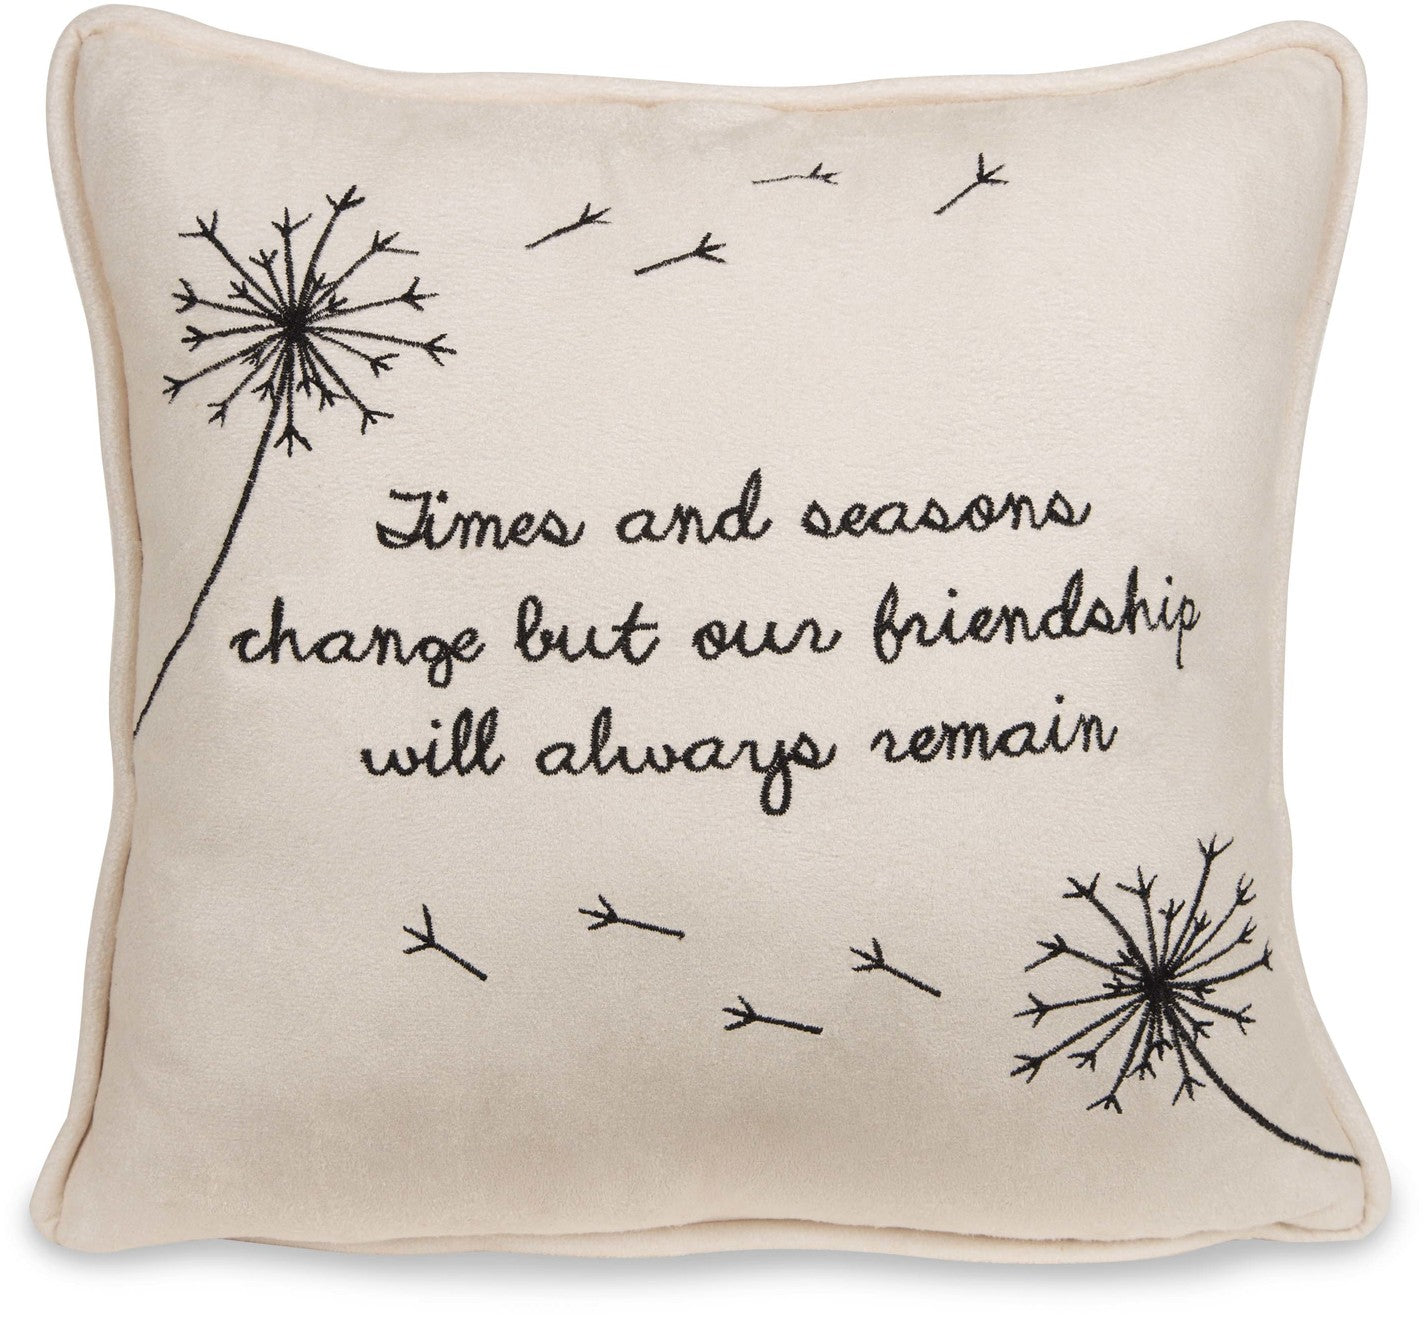 "Friendship - 12"" Micro Suede Pillow"